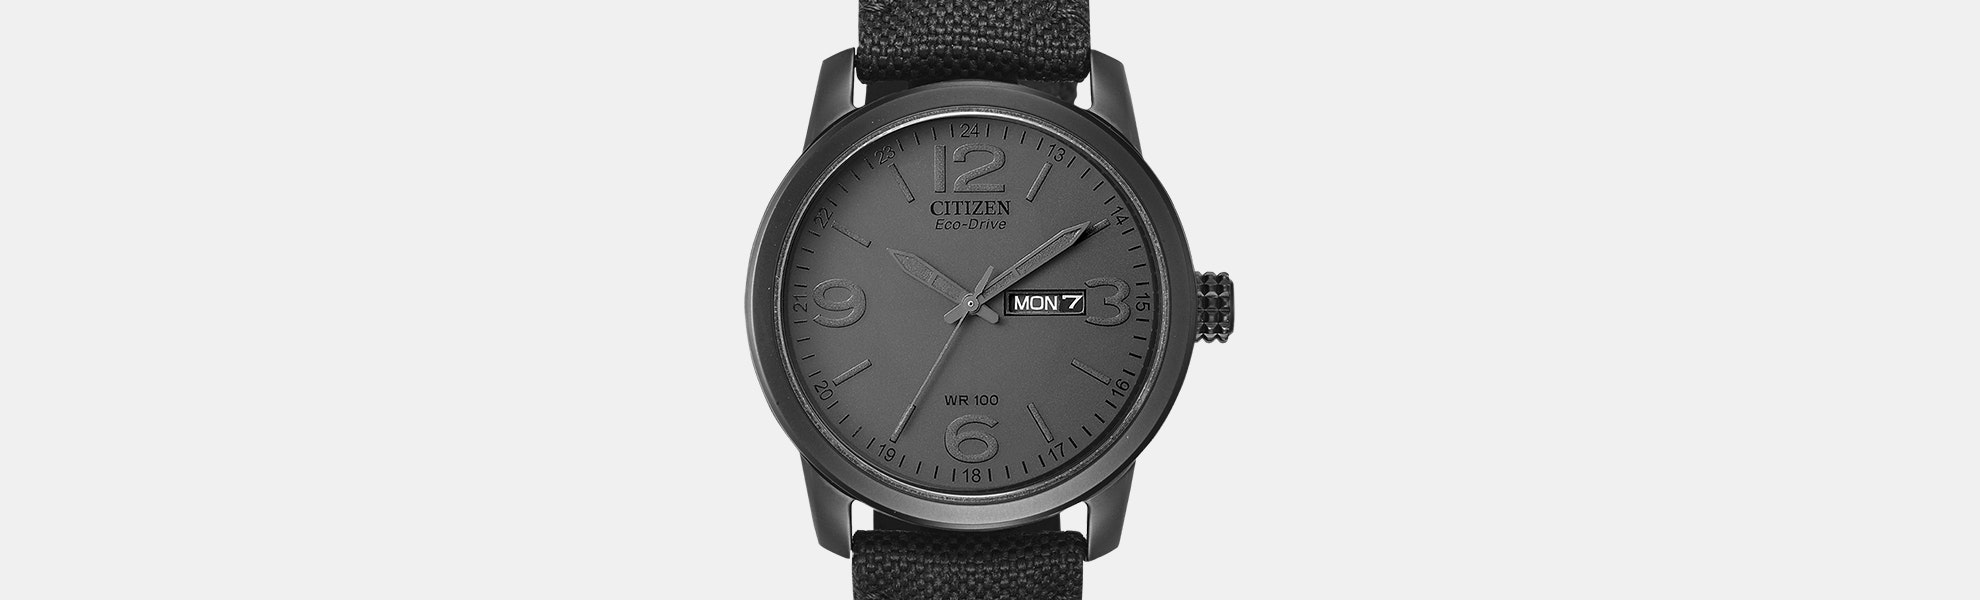 Citizen Chandler BM8475 Eco-Drive Solar Watch